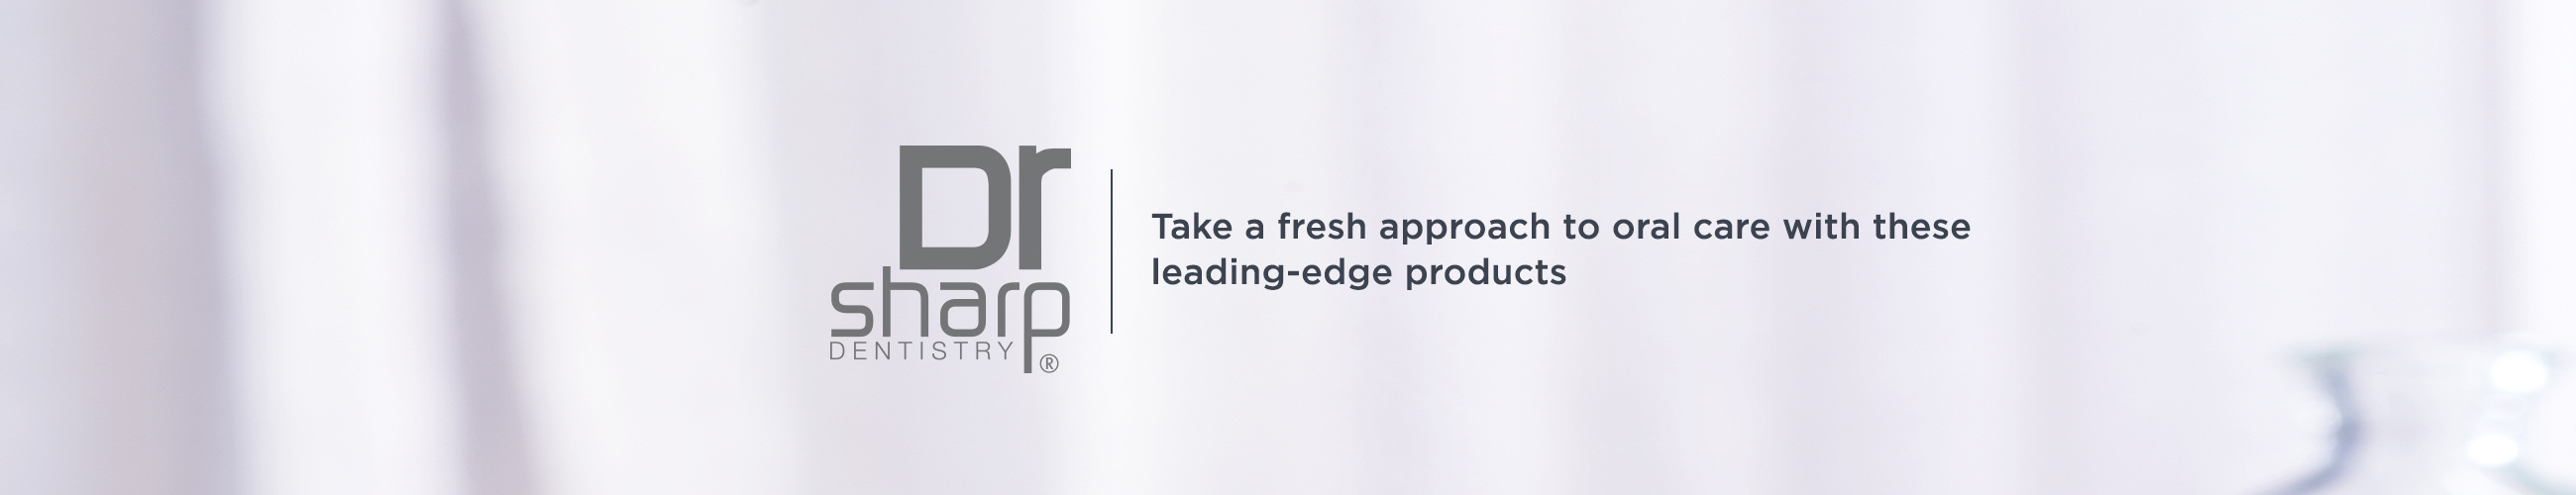 Dr. Sharp Dentistry, Take a fresh approach to oral care with these leading-edge products